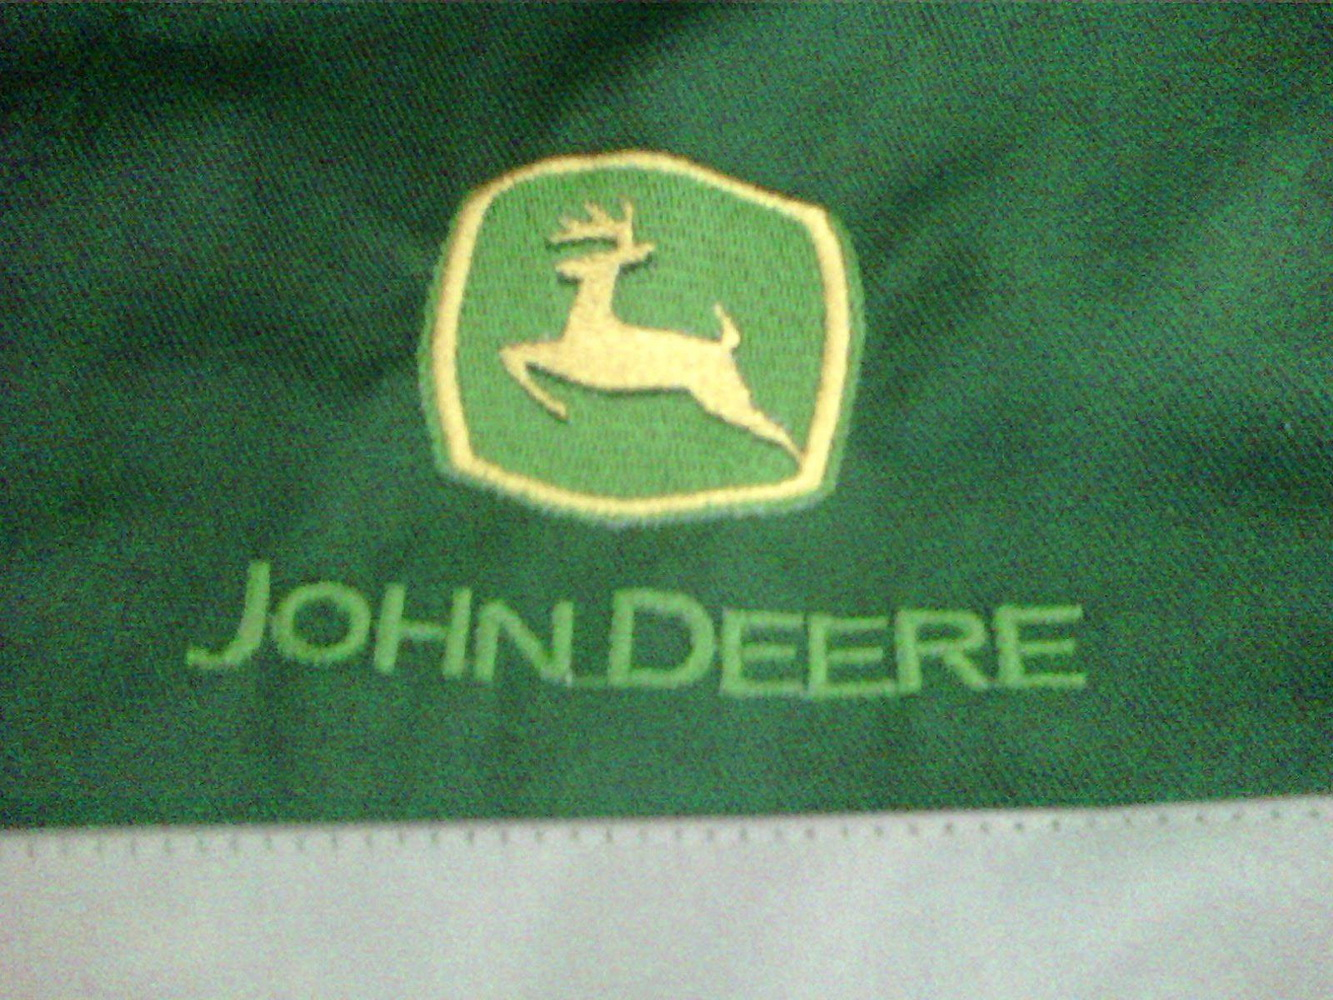 John Deere logo design embroidered1